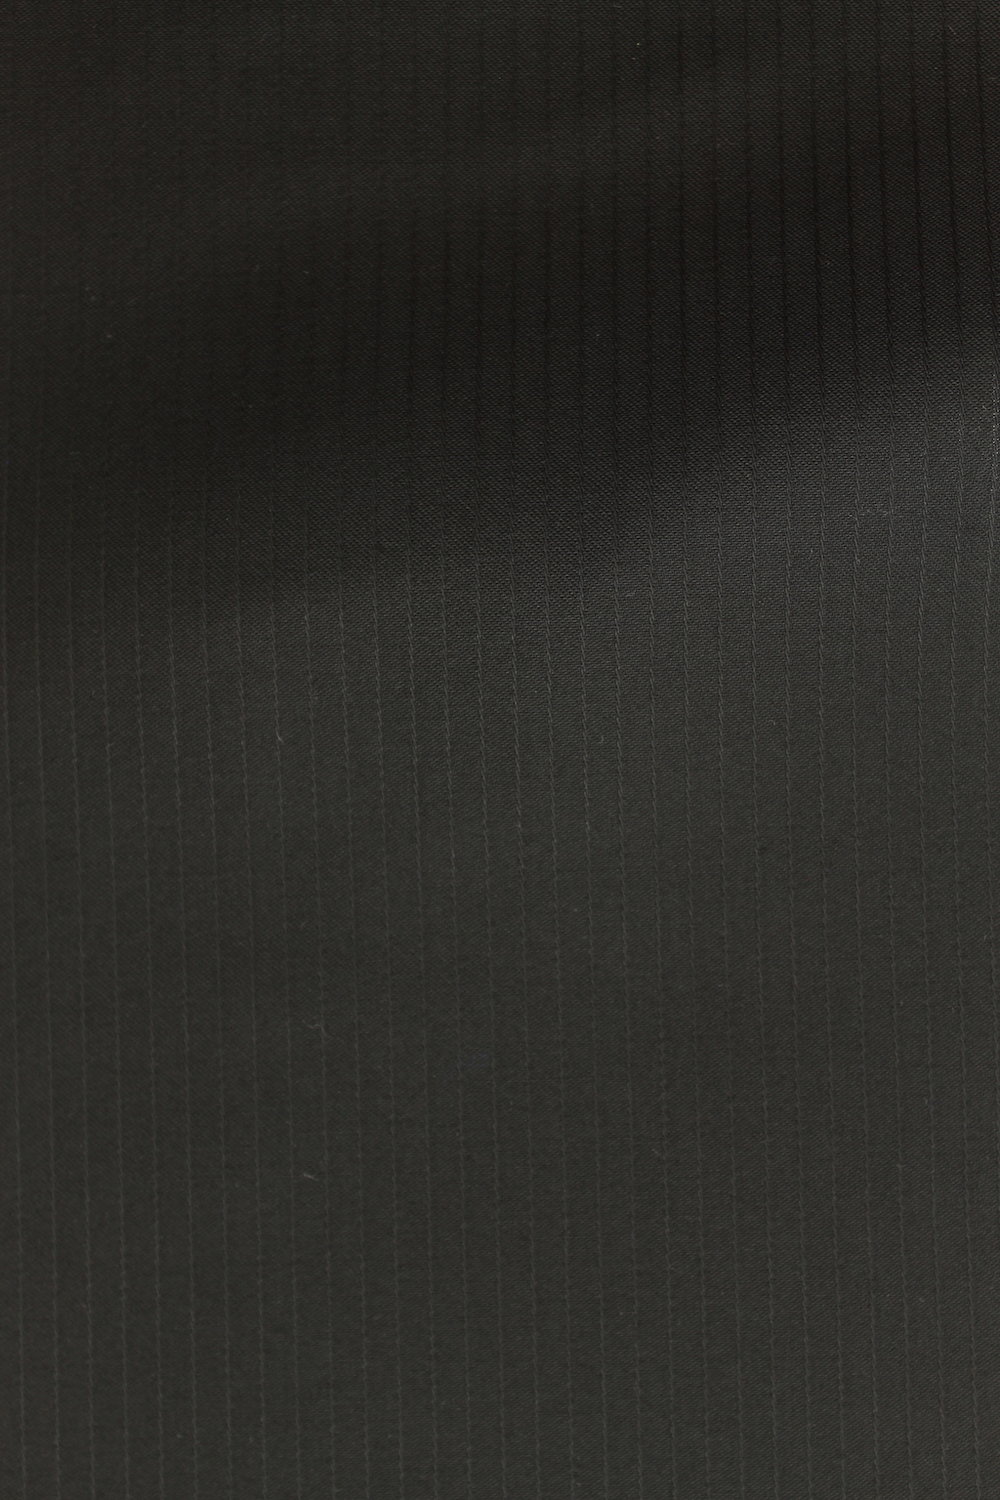 6649 Black Stripe.JPG